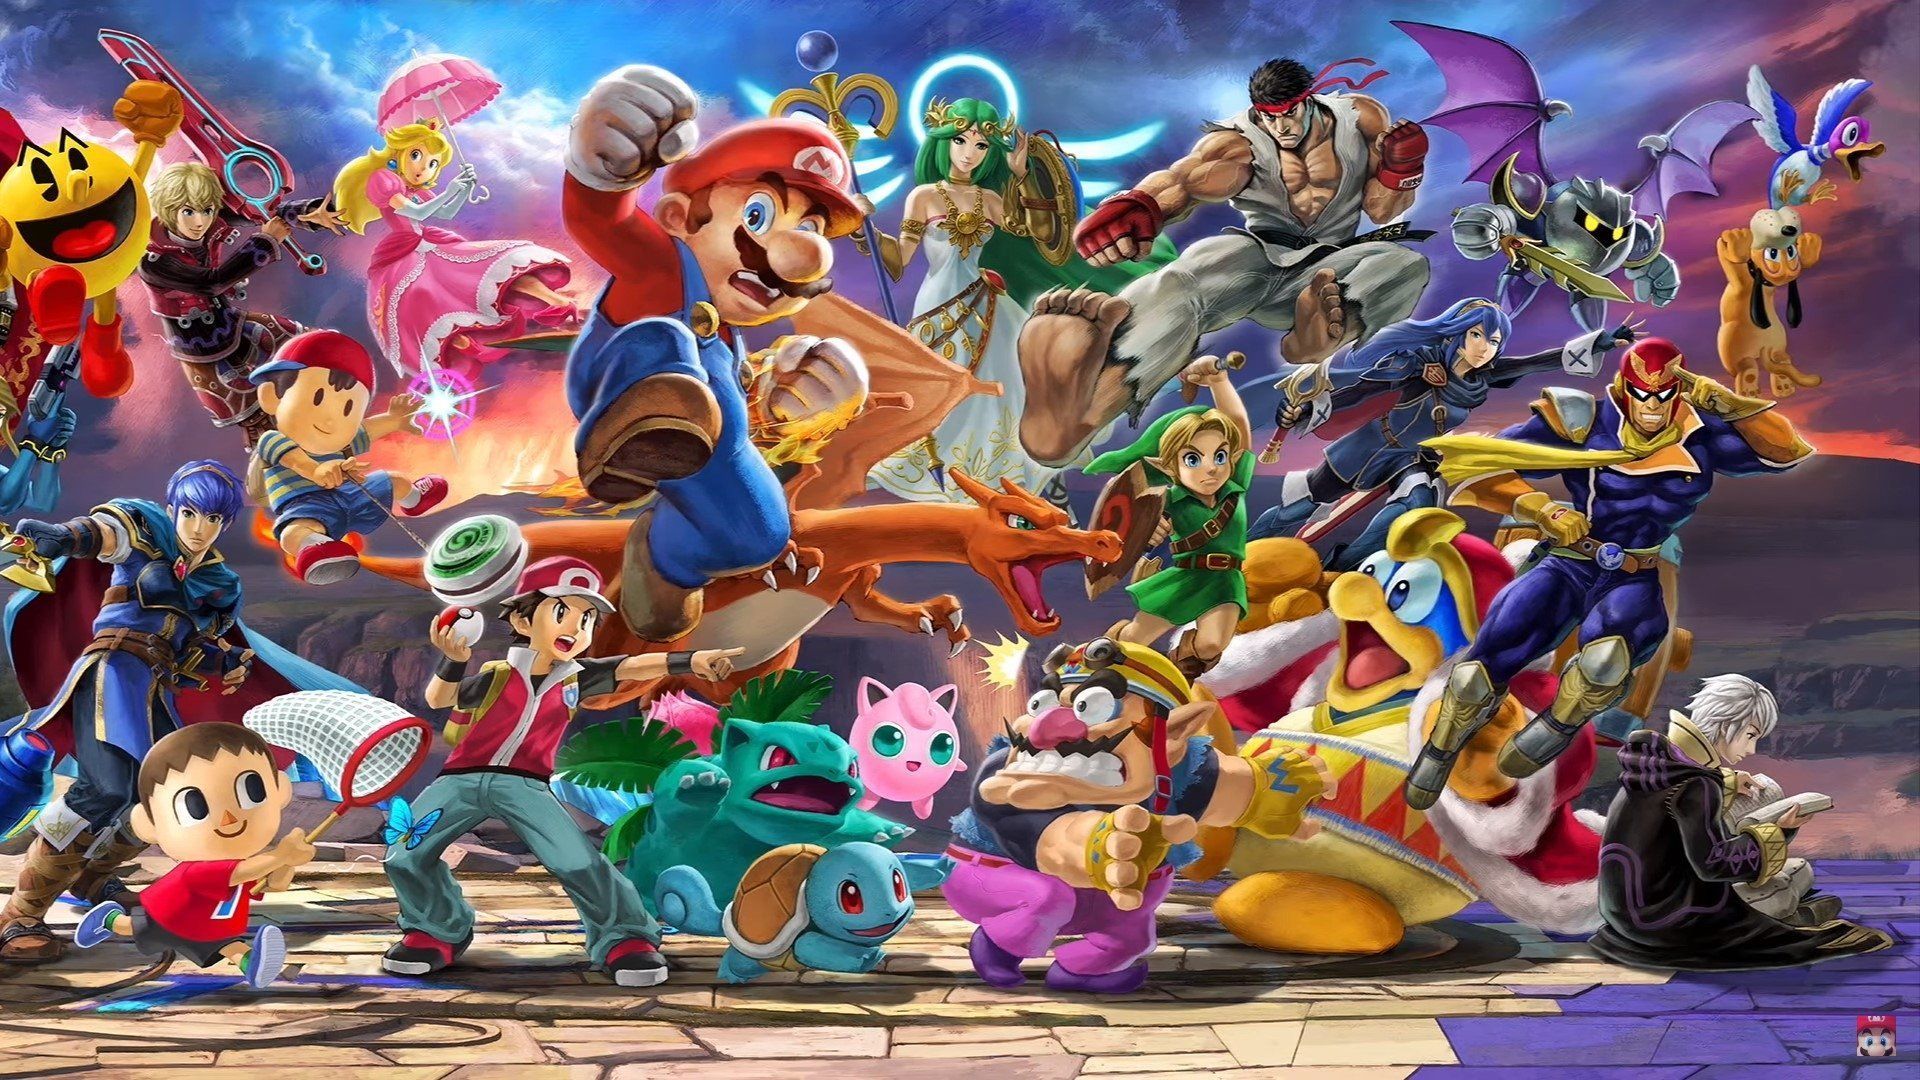 Smash Bros Ultimate Wallpapers Top Free Smash Bros Ultimate